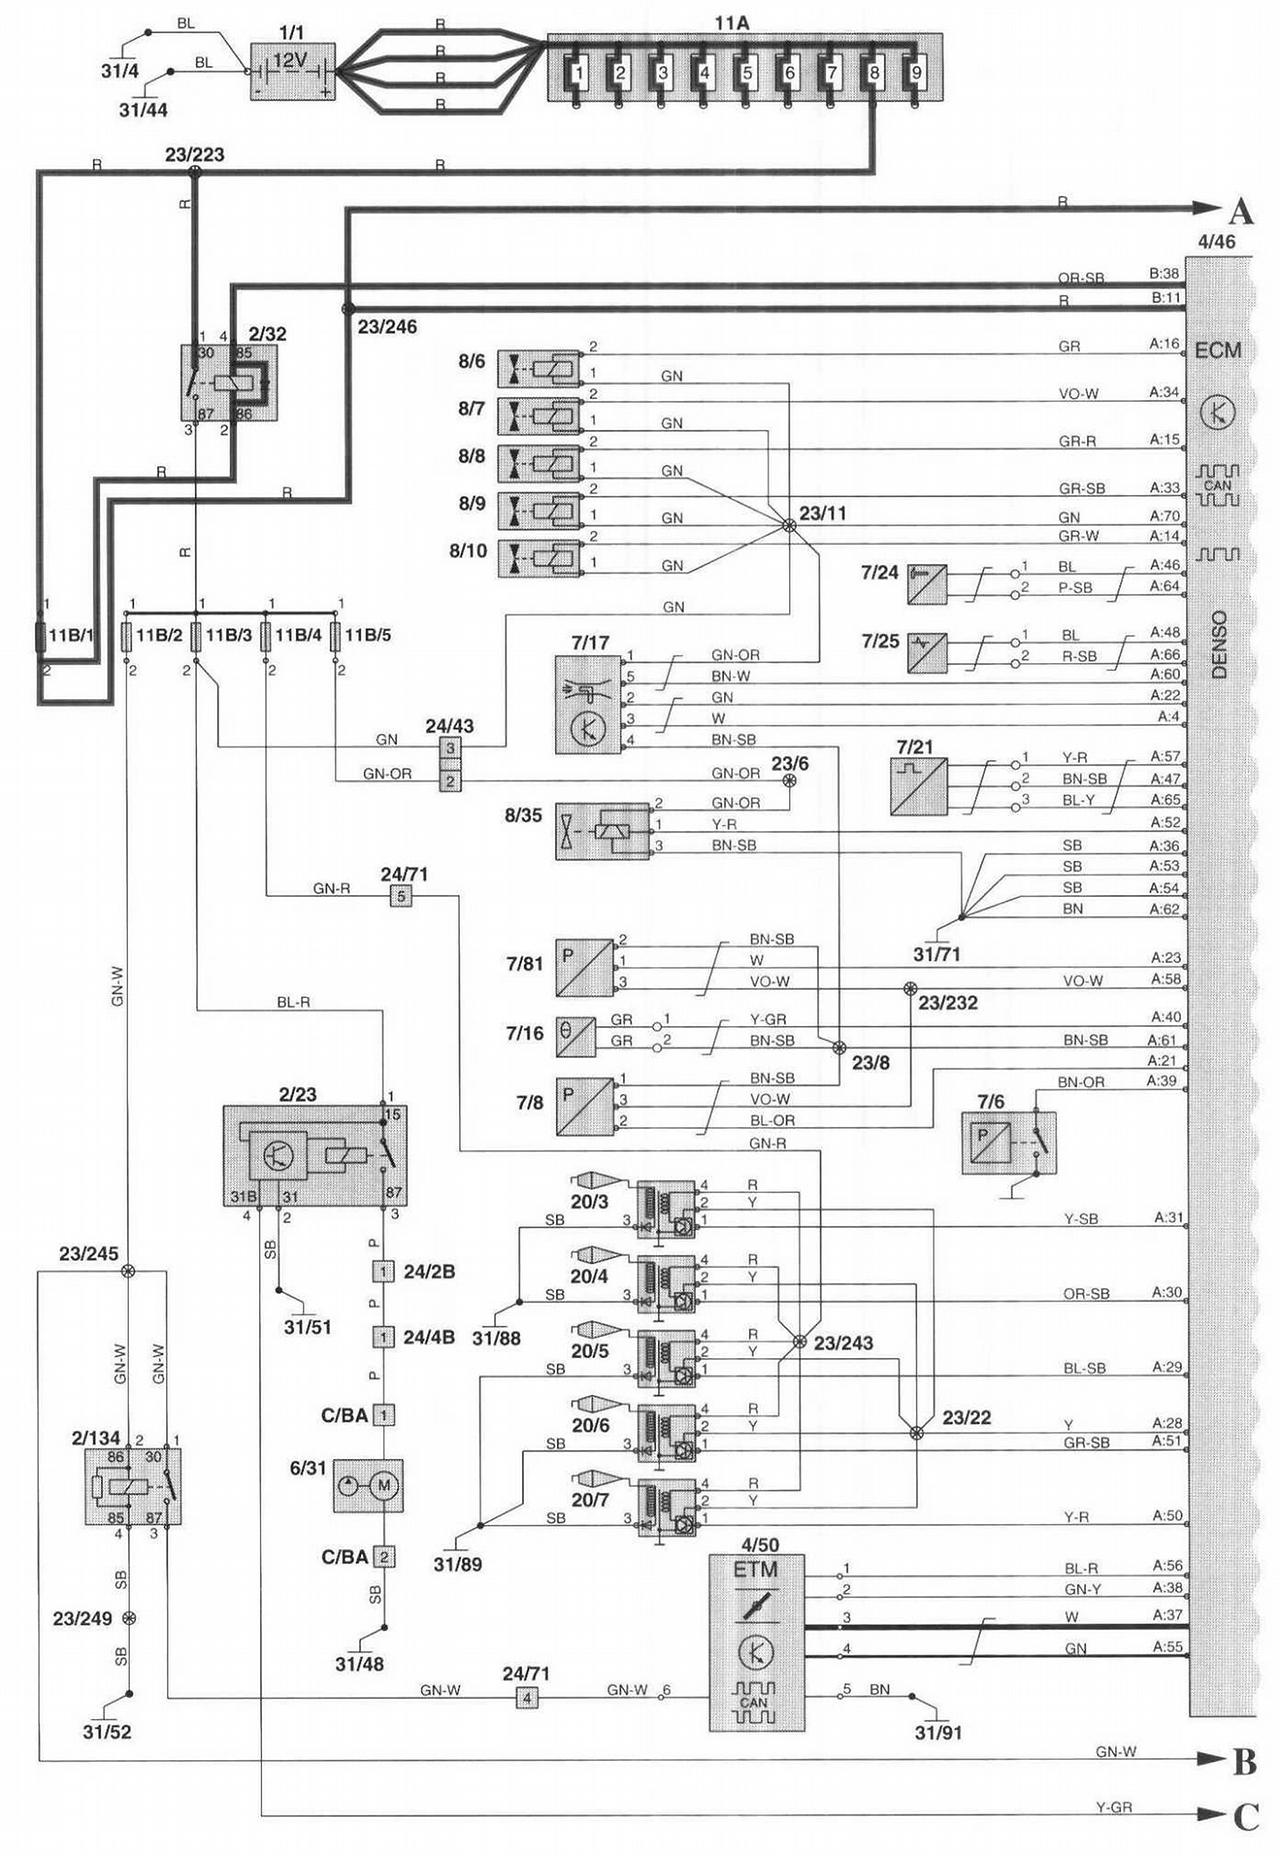 2004 Volvo S40 Radio Wiring Diagram - Lesco Z Two Wiring Diagram -  controlwiring.losdol2.jeanjaures37.fr | Volvo Xc90 Stereo Wiring Diagram |  | Wiring Diagram Resource